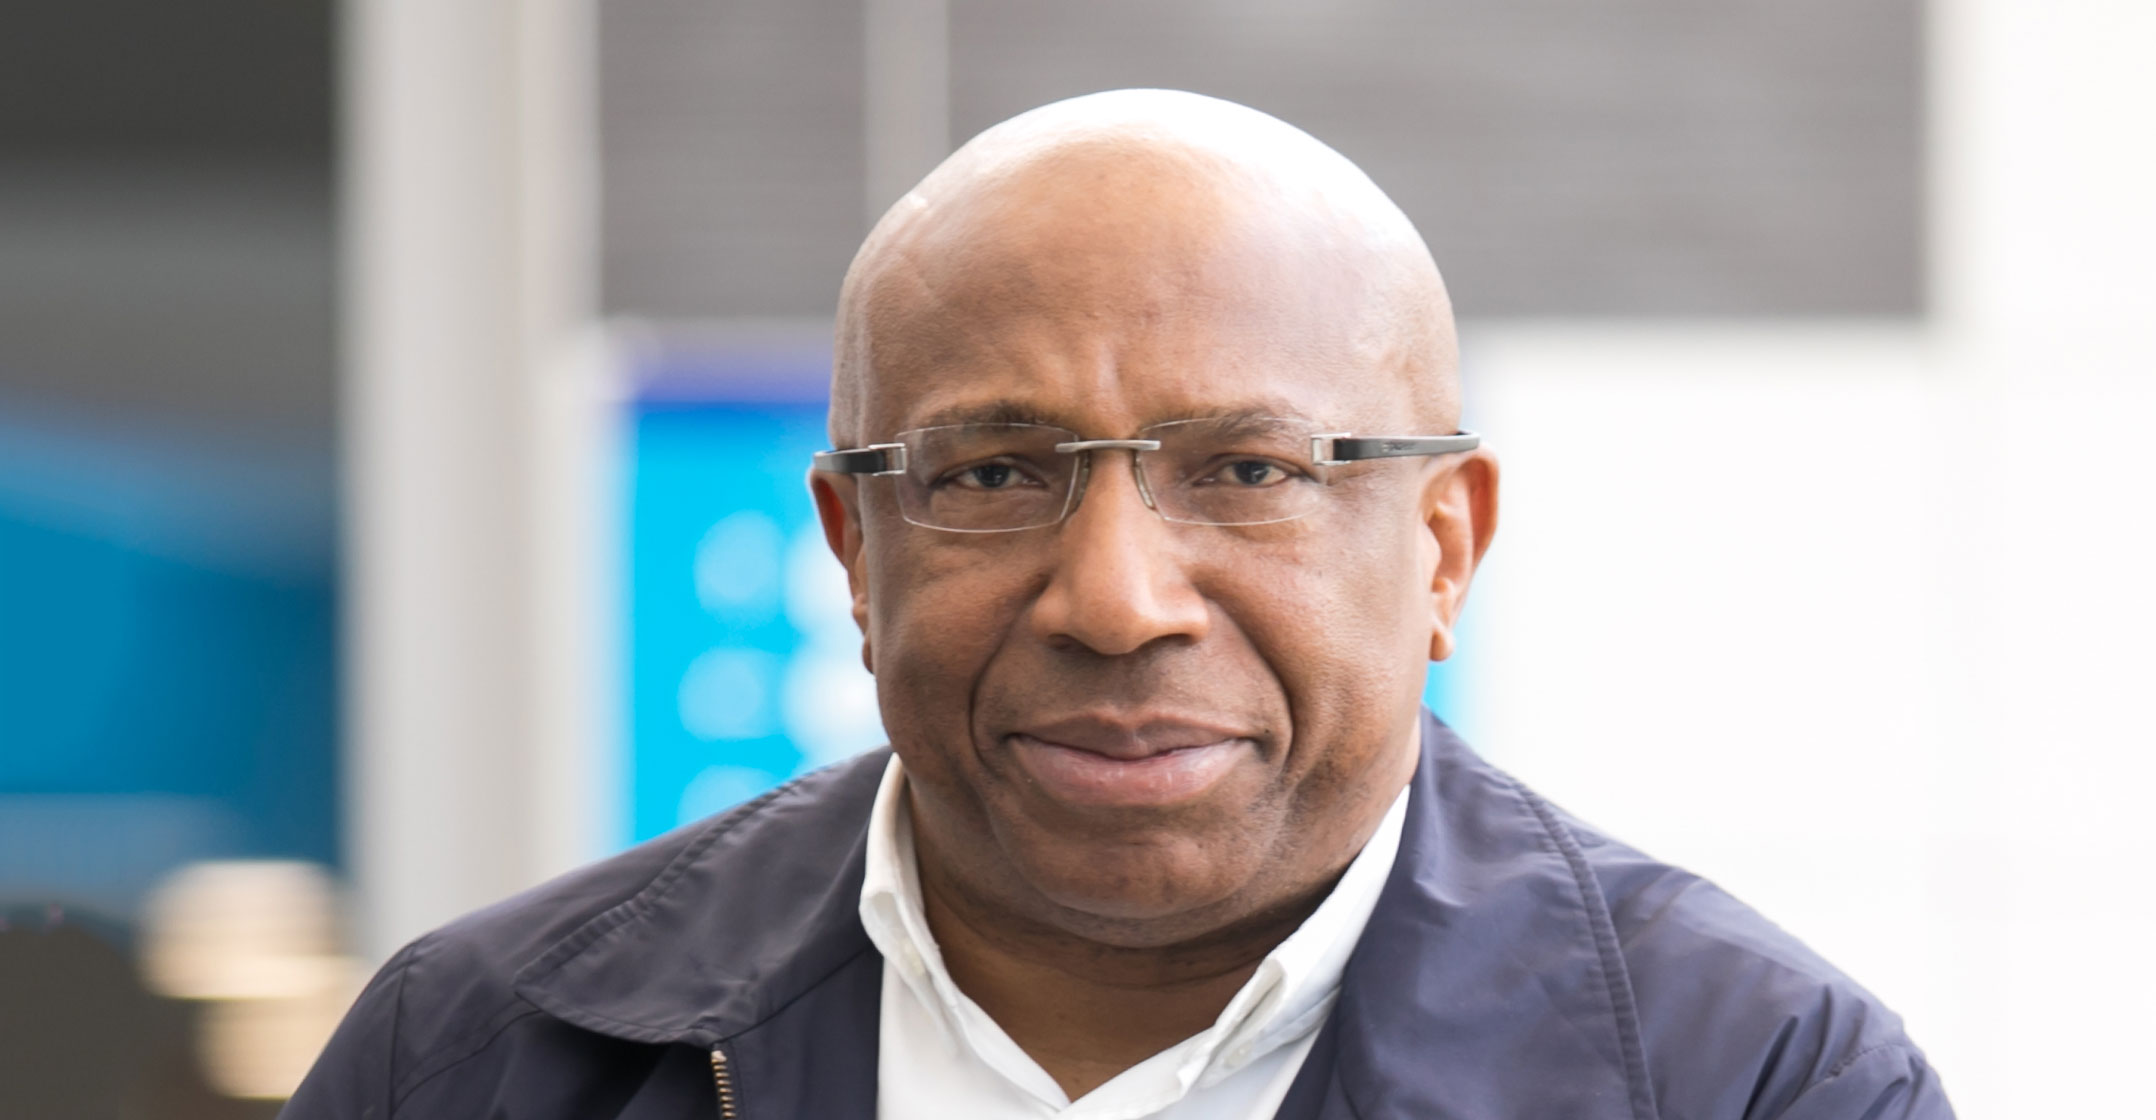 Telkom's Openserve is next up for a JSE listing - TechCentral